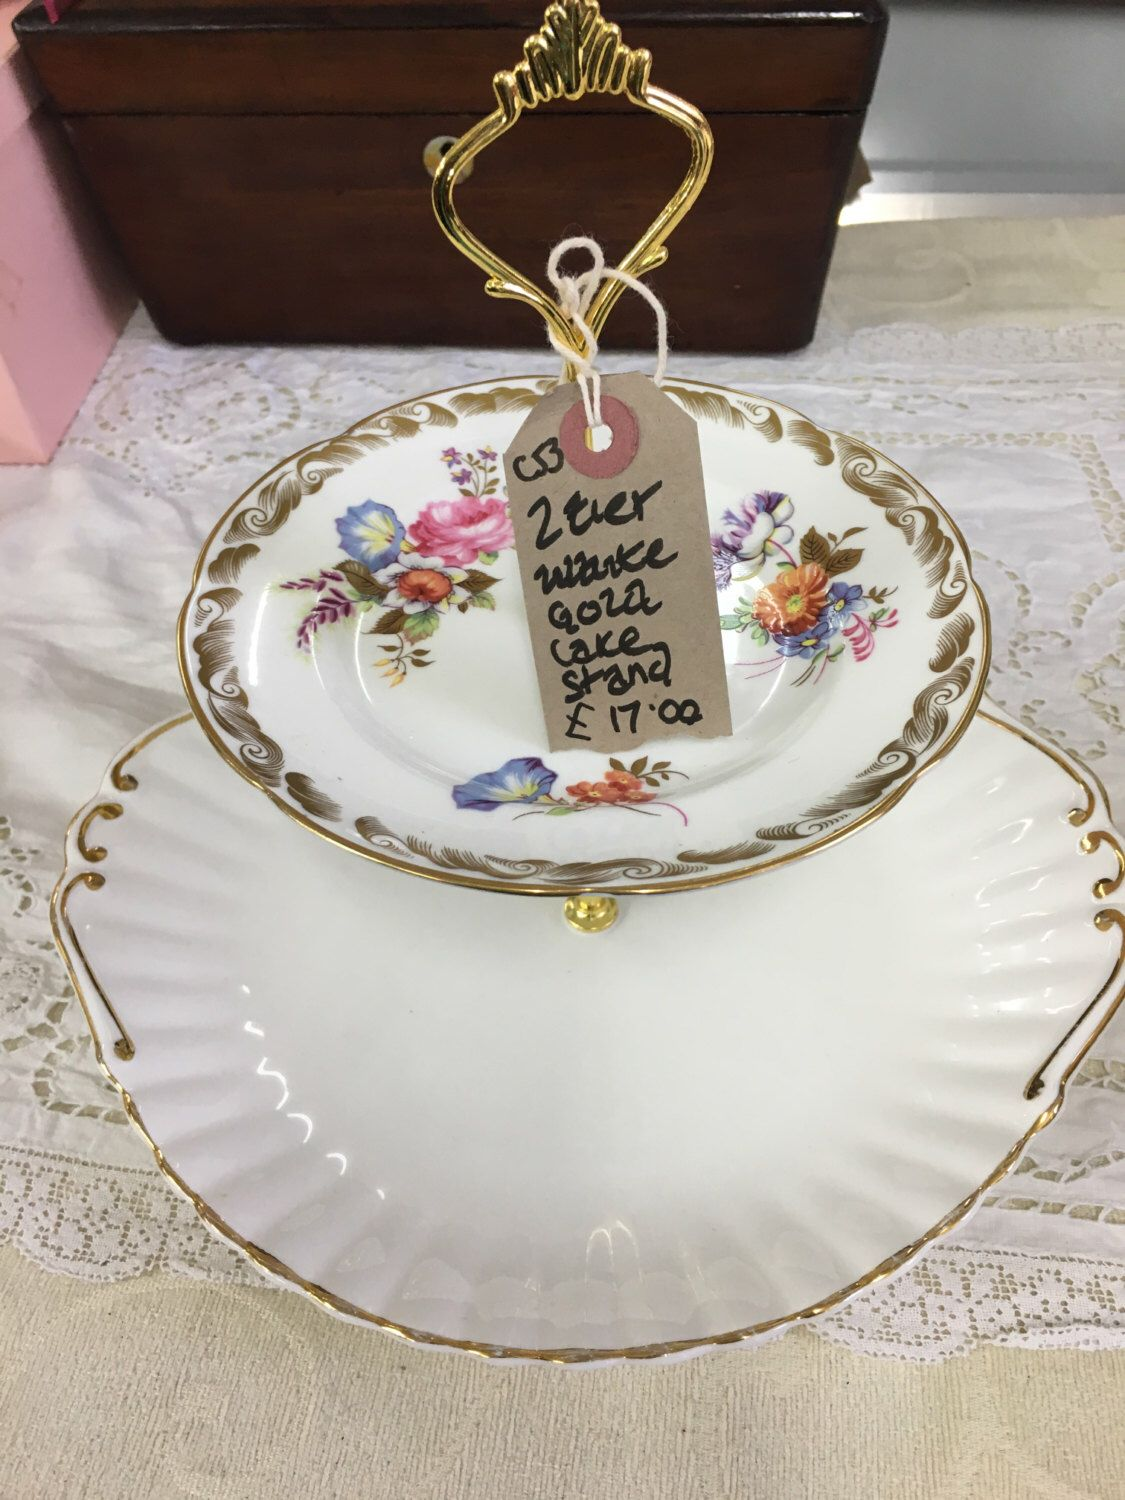 2 Tier mismatch vintage cake stand handmade by